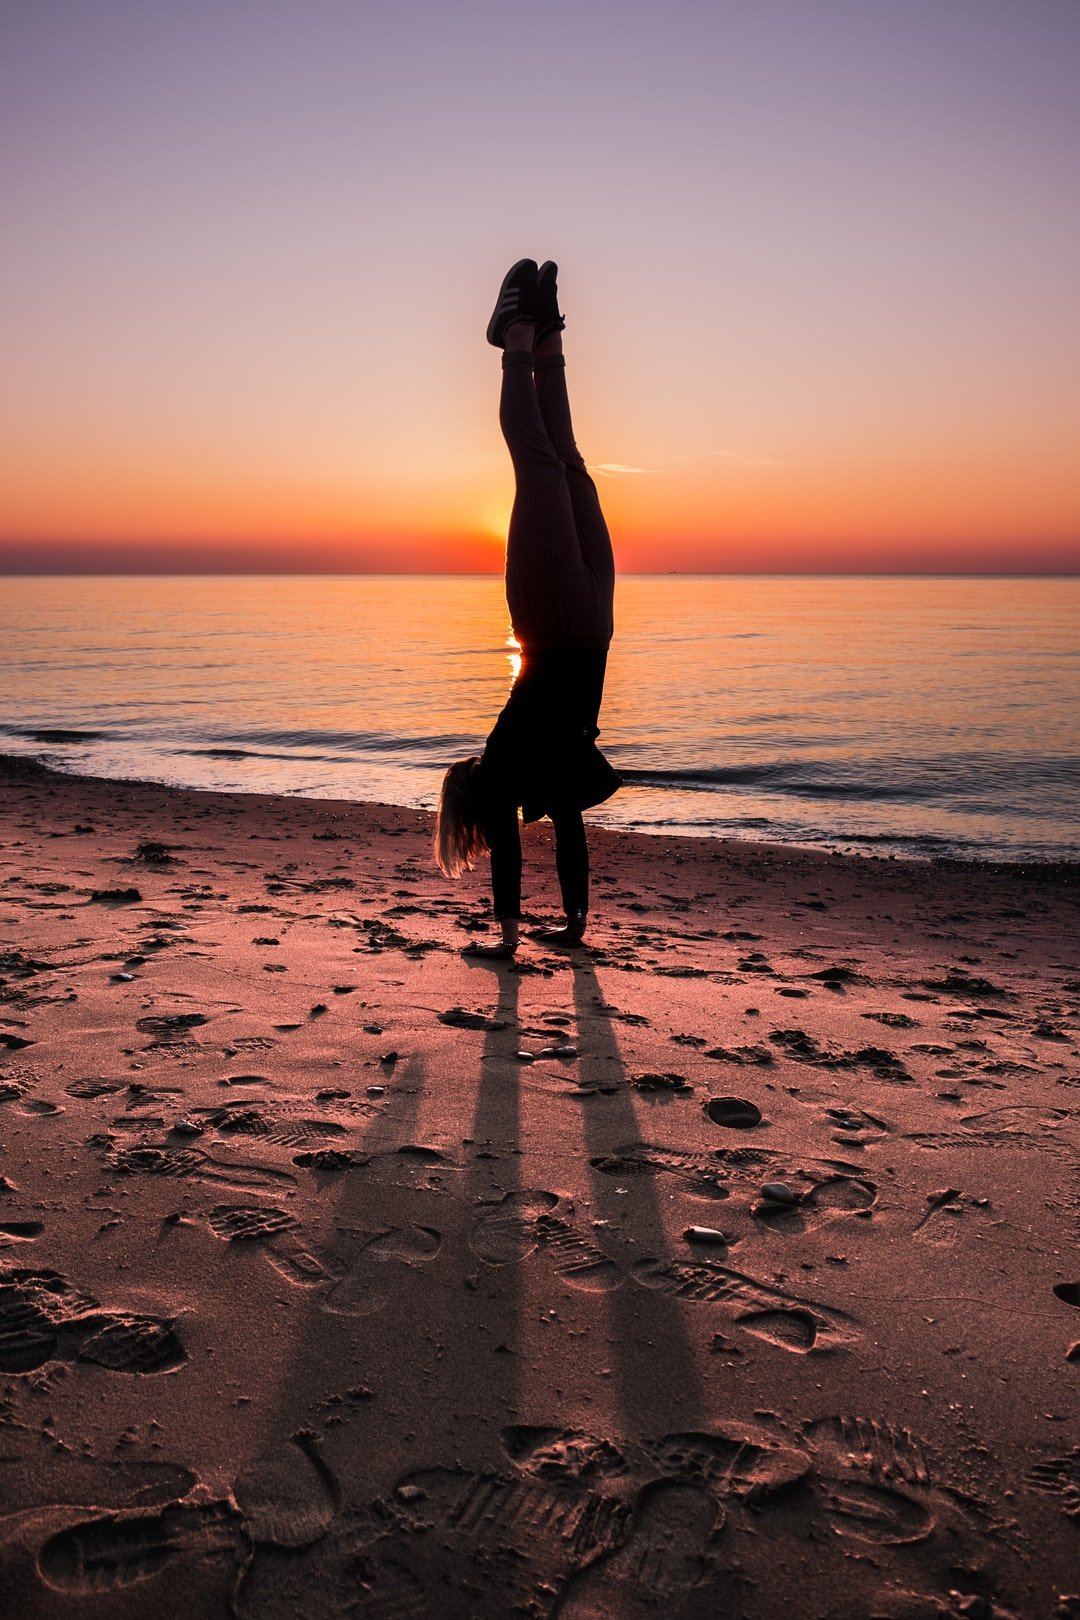 Handstand on the beach in Denmark during sunset.